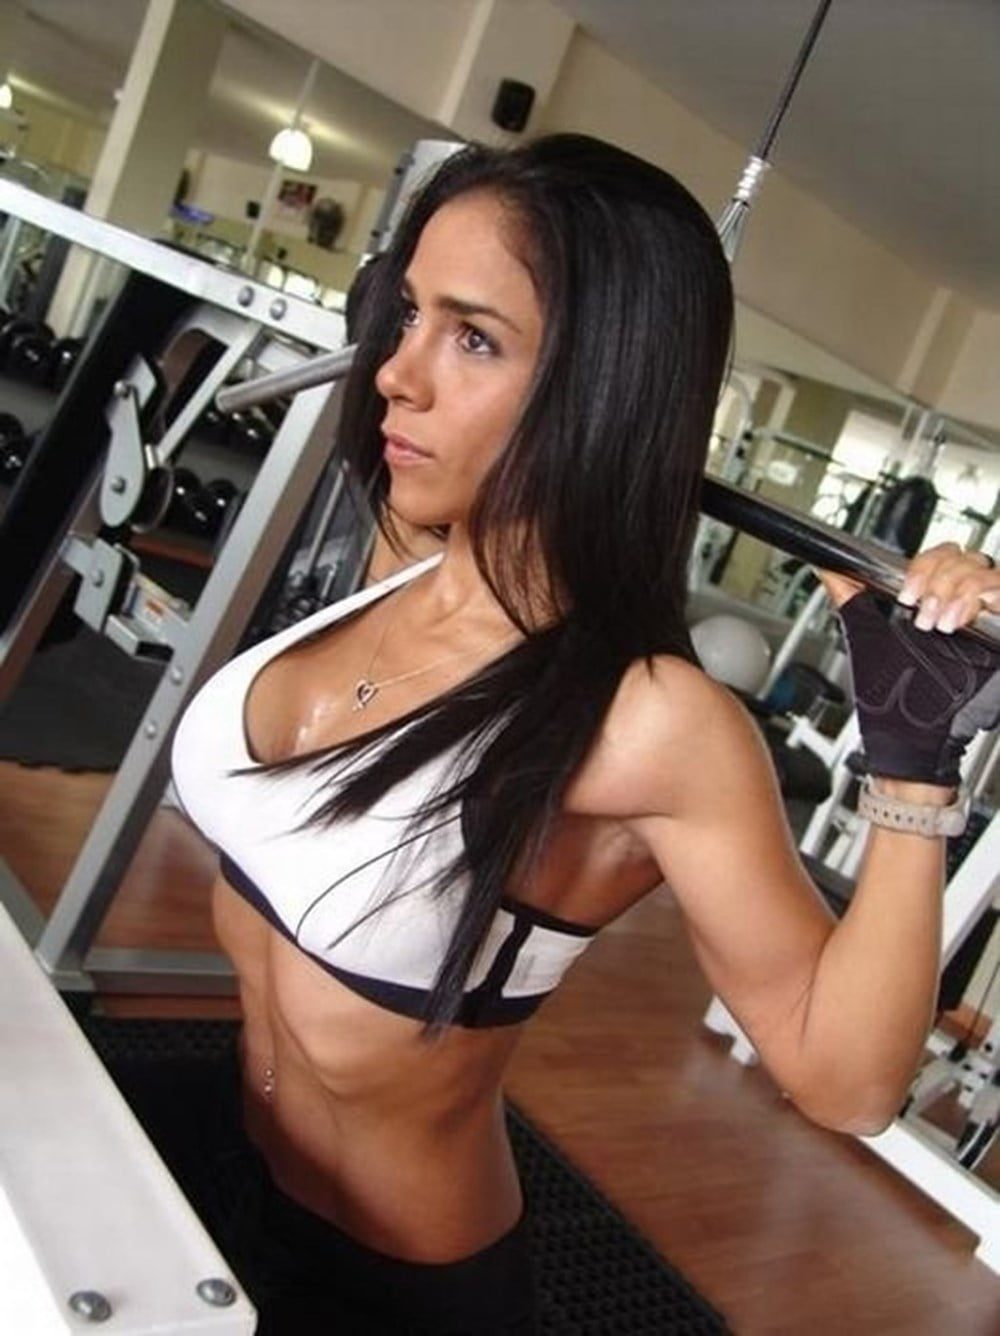 Muscular Girls Who Are Outstanding With Their Appearance 12